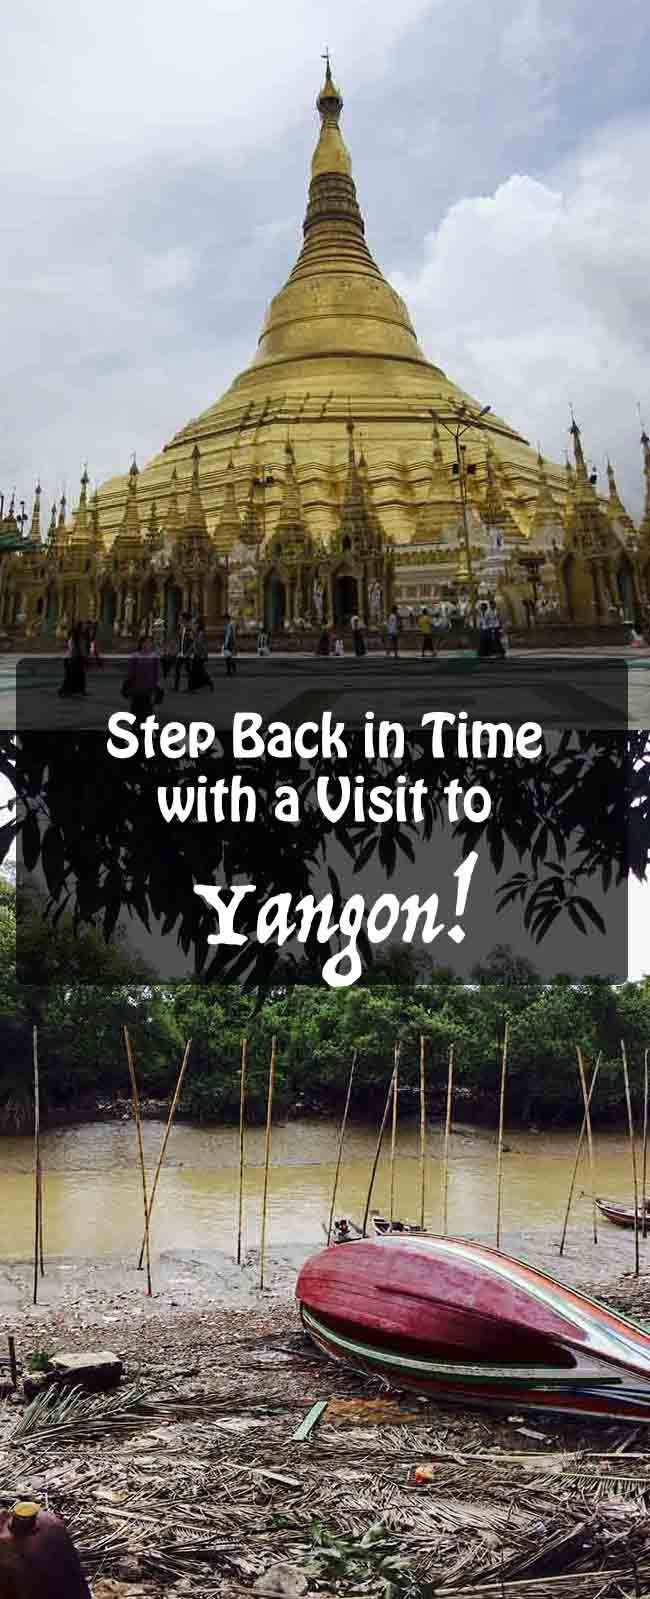 Shwedagon Pagoda, Dala Island & High Tea at The Strand! Yangon is a special place. In this post I give you travel tips and info to make your stay great!